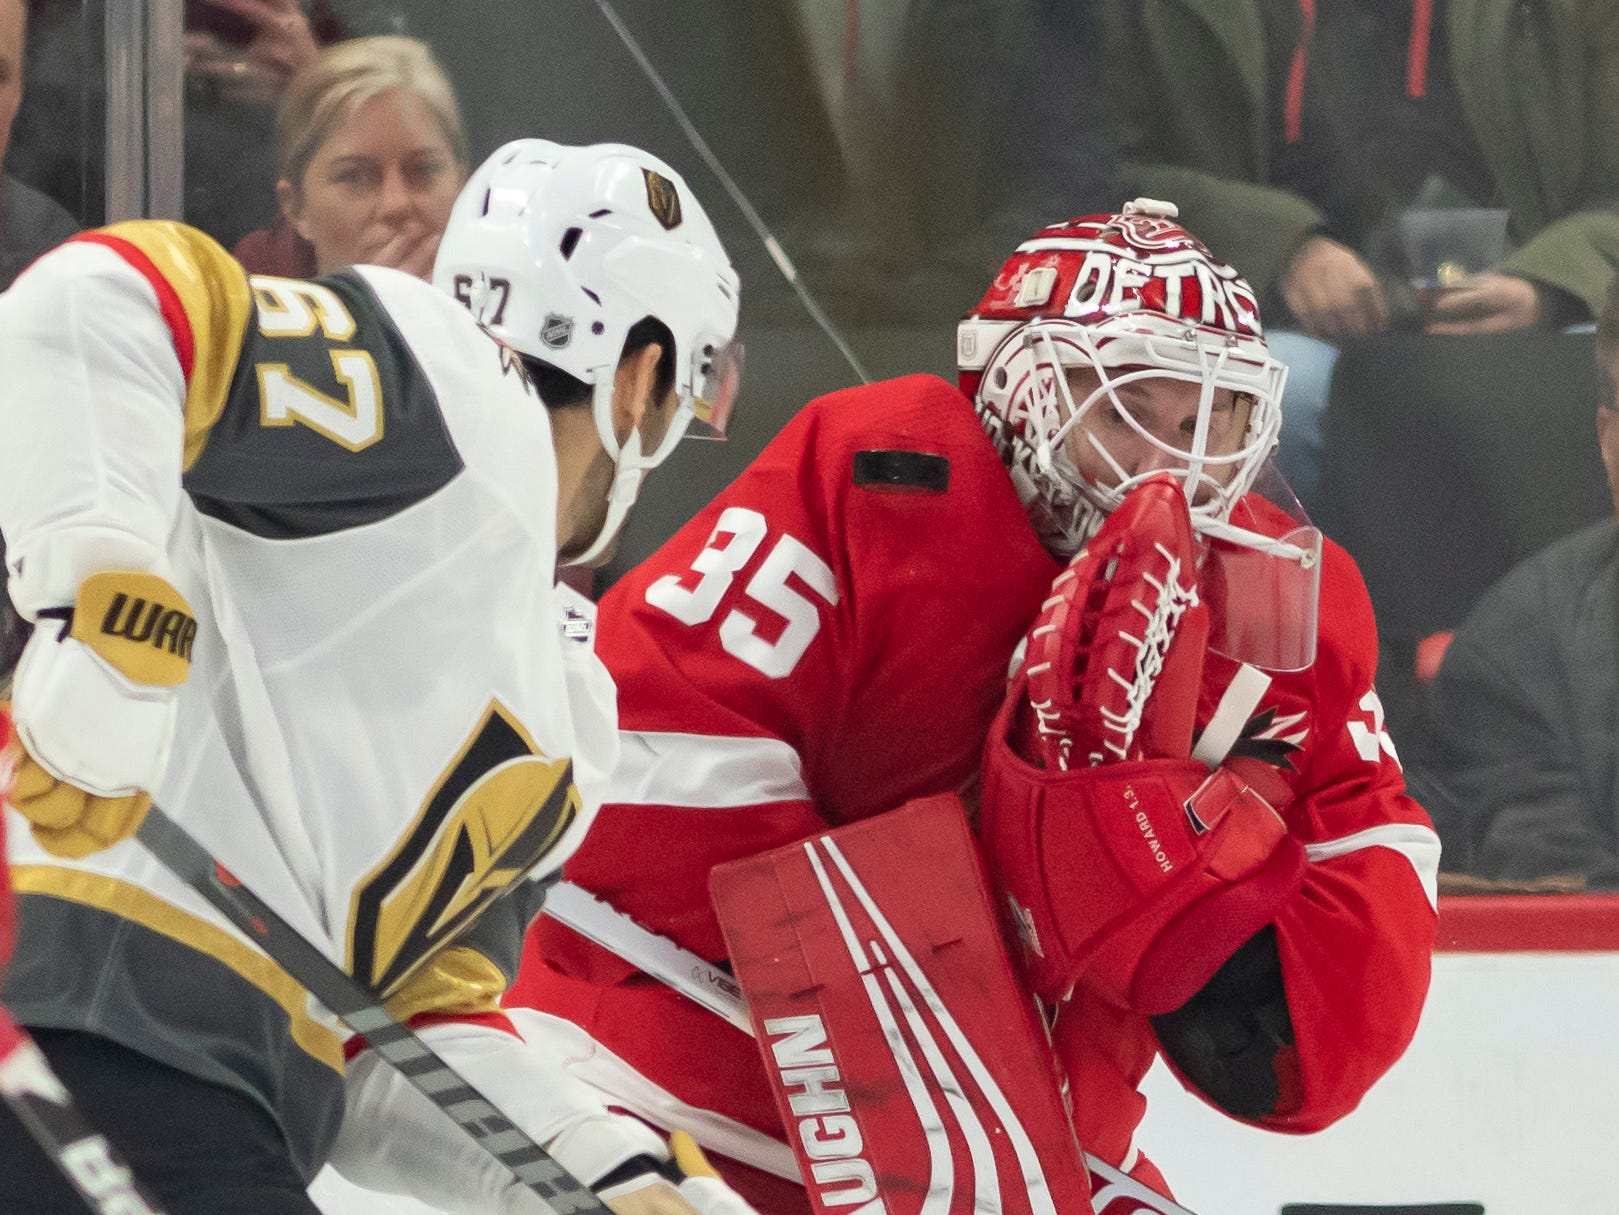 Vegas left wing Max Pacioretty tries to deflect the puck past Detroit goaltender Jimmy Howard in the first period.